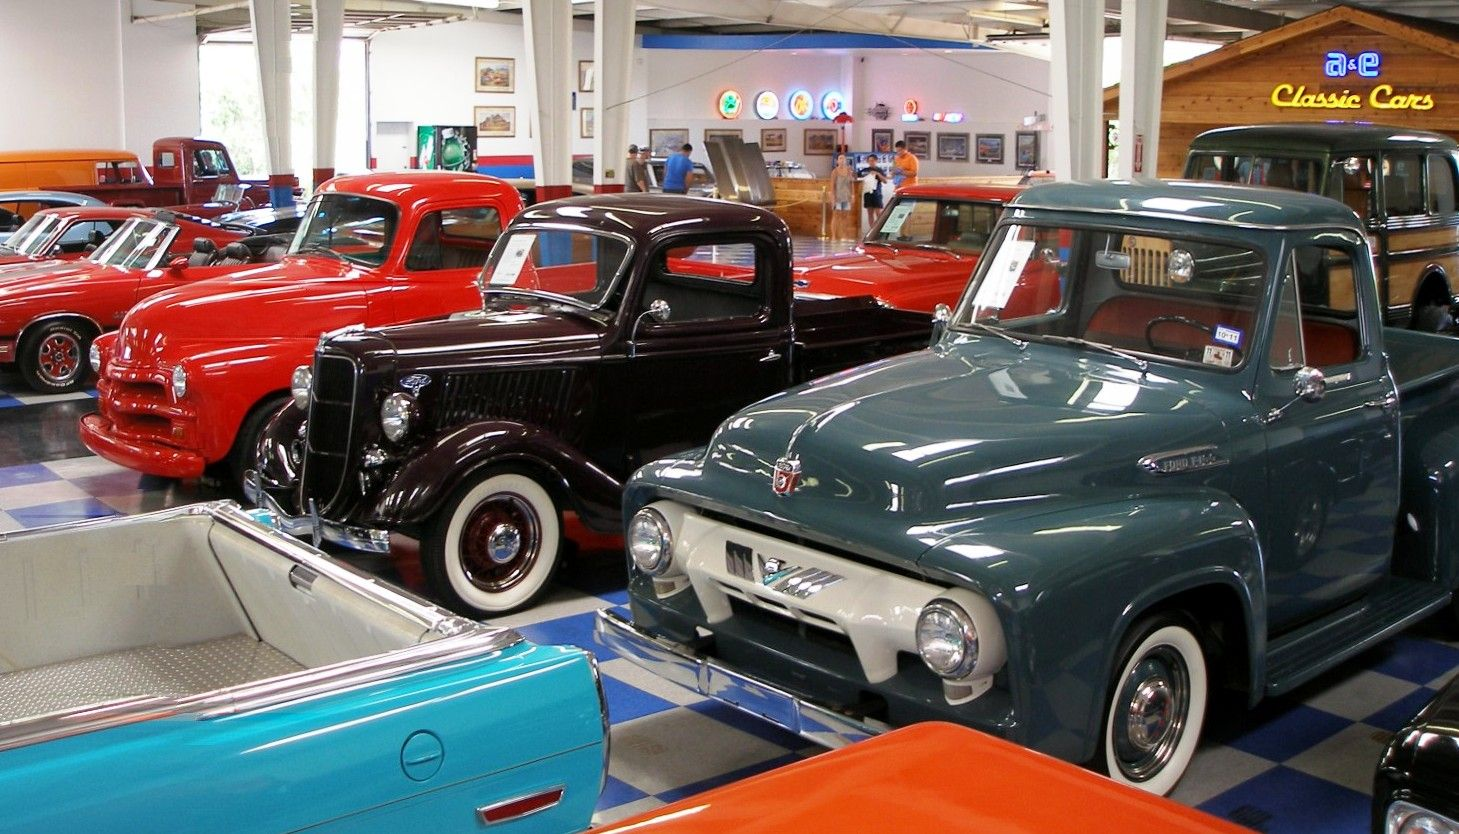 Classic Cars in Easton, Allentown, and Bethlehem, PA | Vintage ...